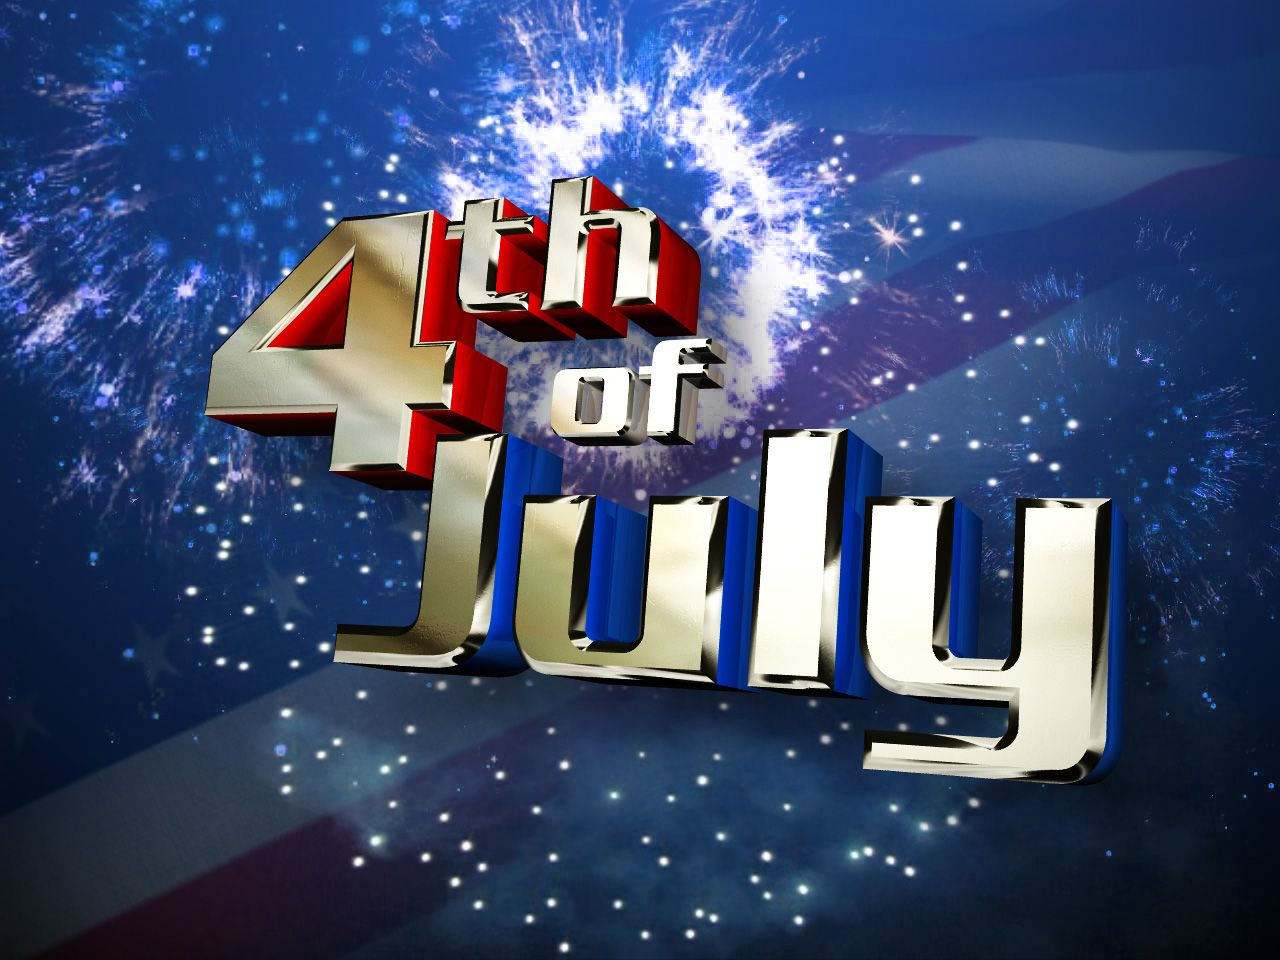 4th of july google search 4th of july ideas 4th of july images 4th of july wallpaper - Fourth of july live wallpaper ...